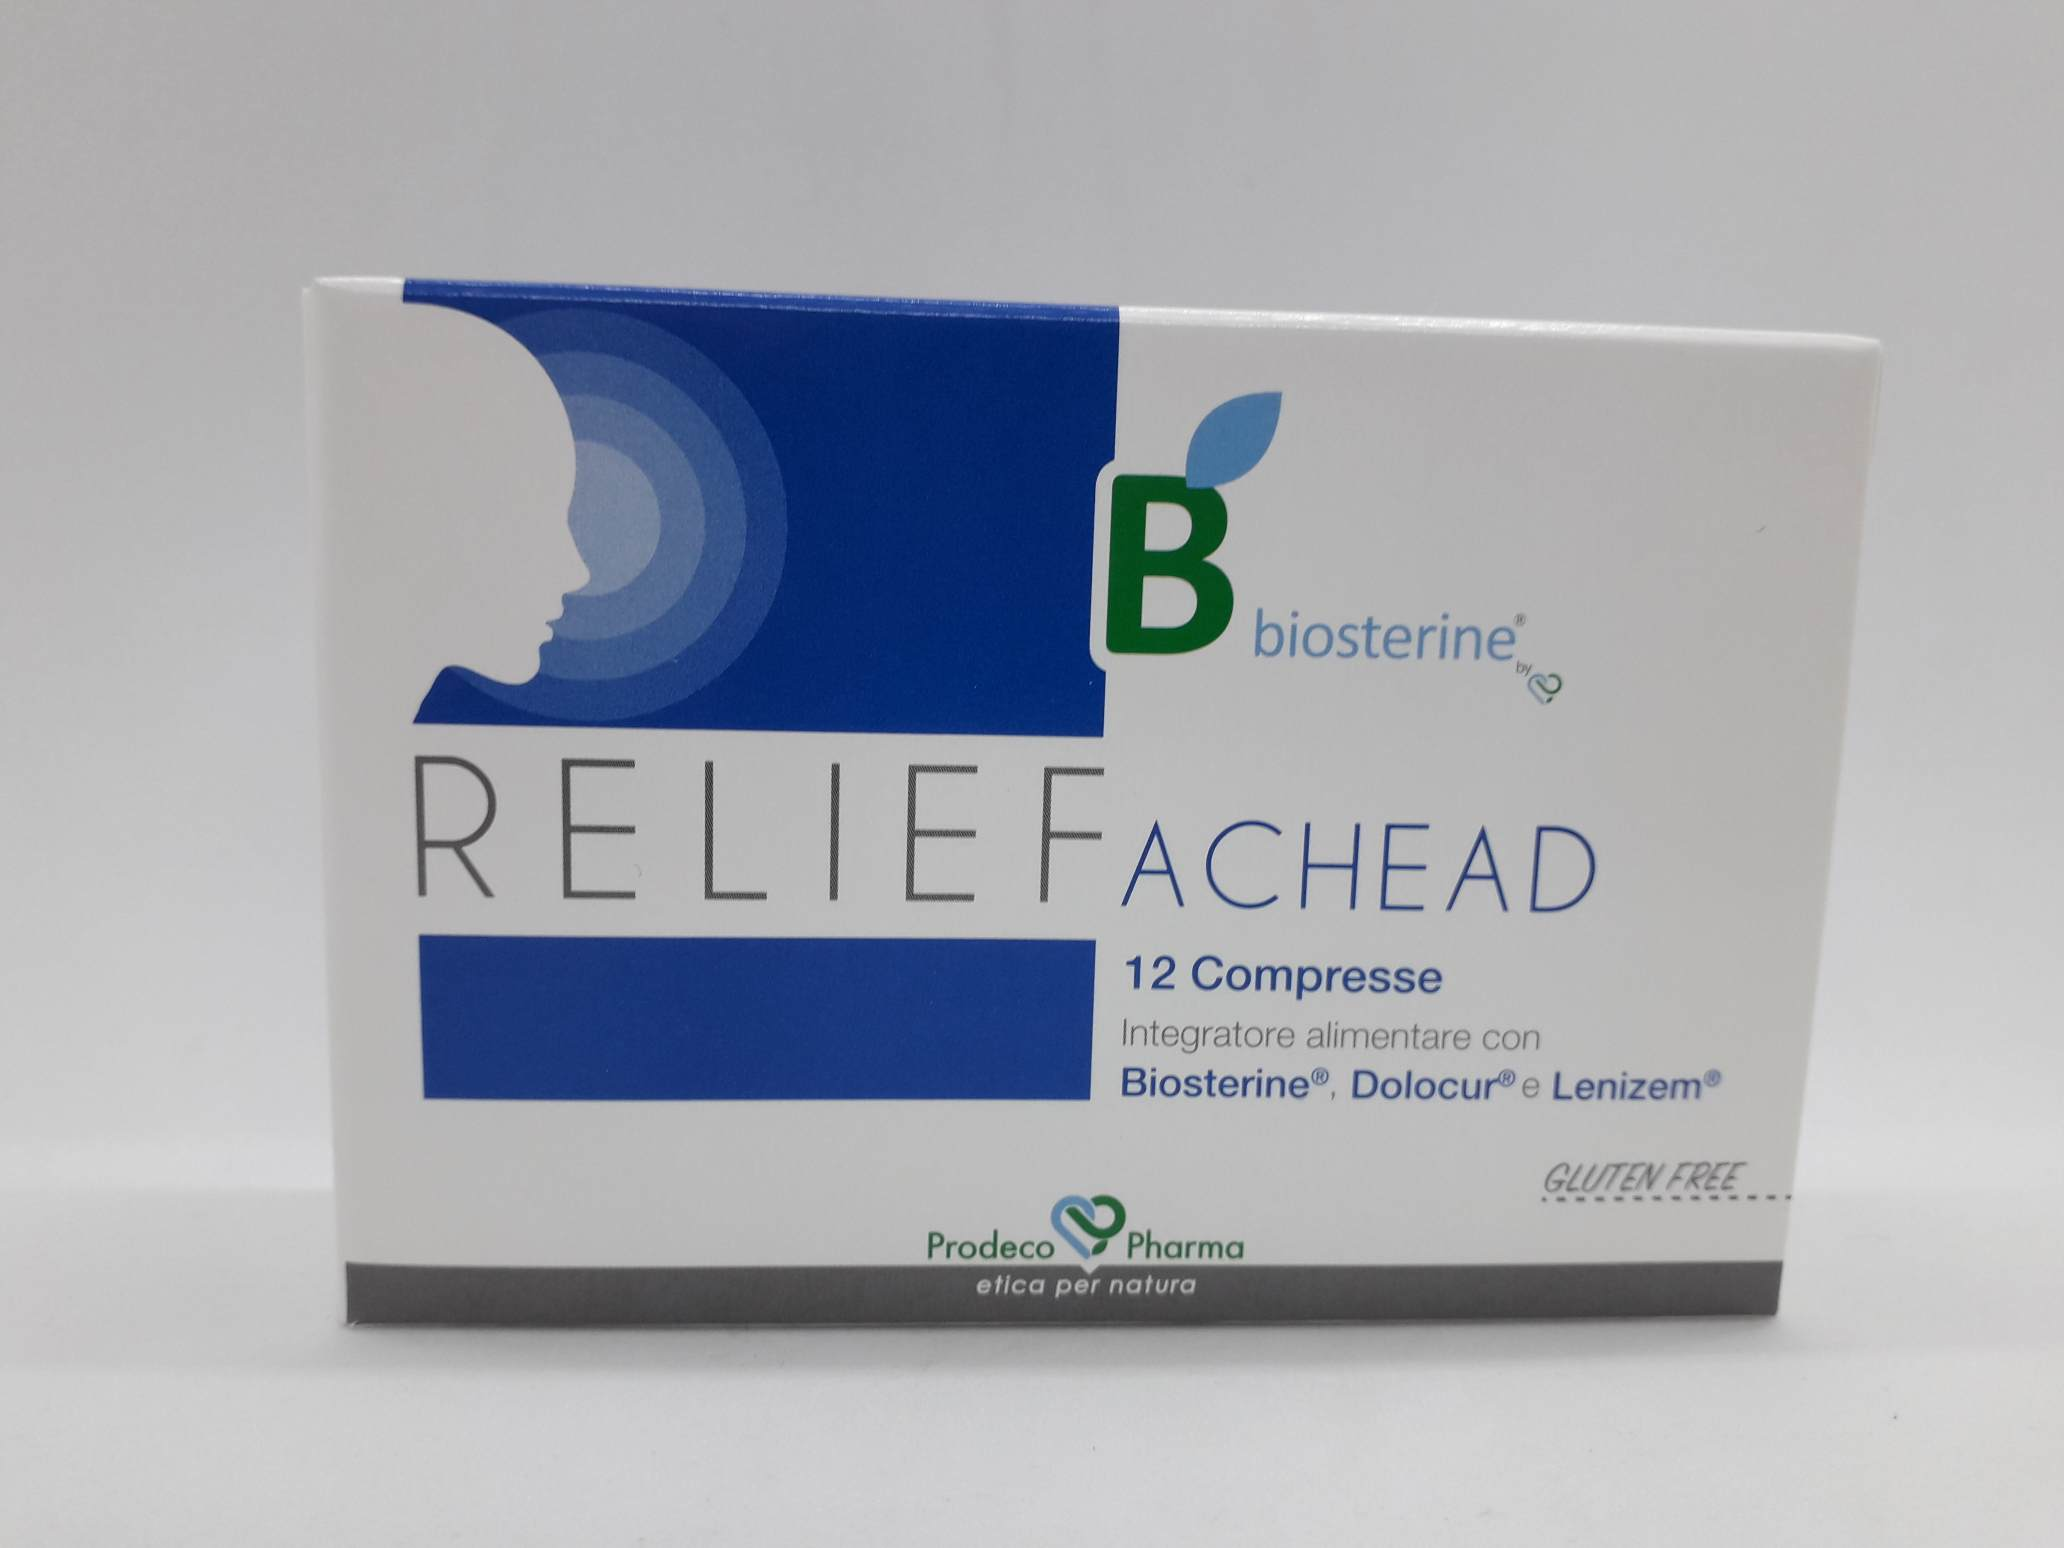 RELIEF BIOSTERINE ACHEAD 12 COMPRESSE - Farmaciaempatica.it